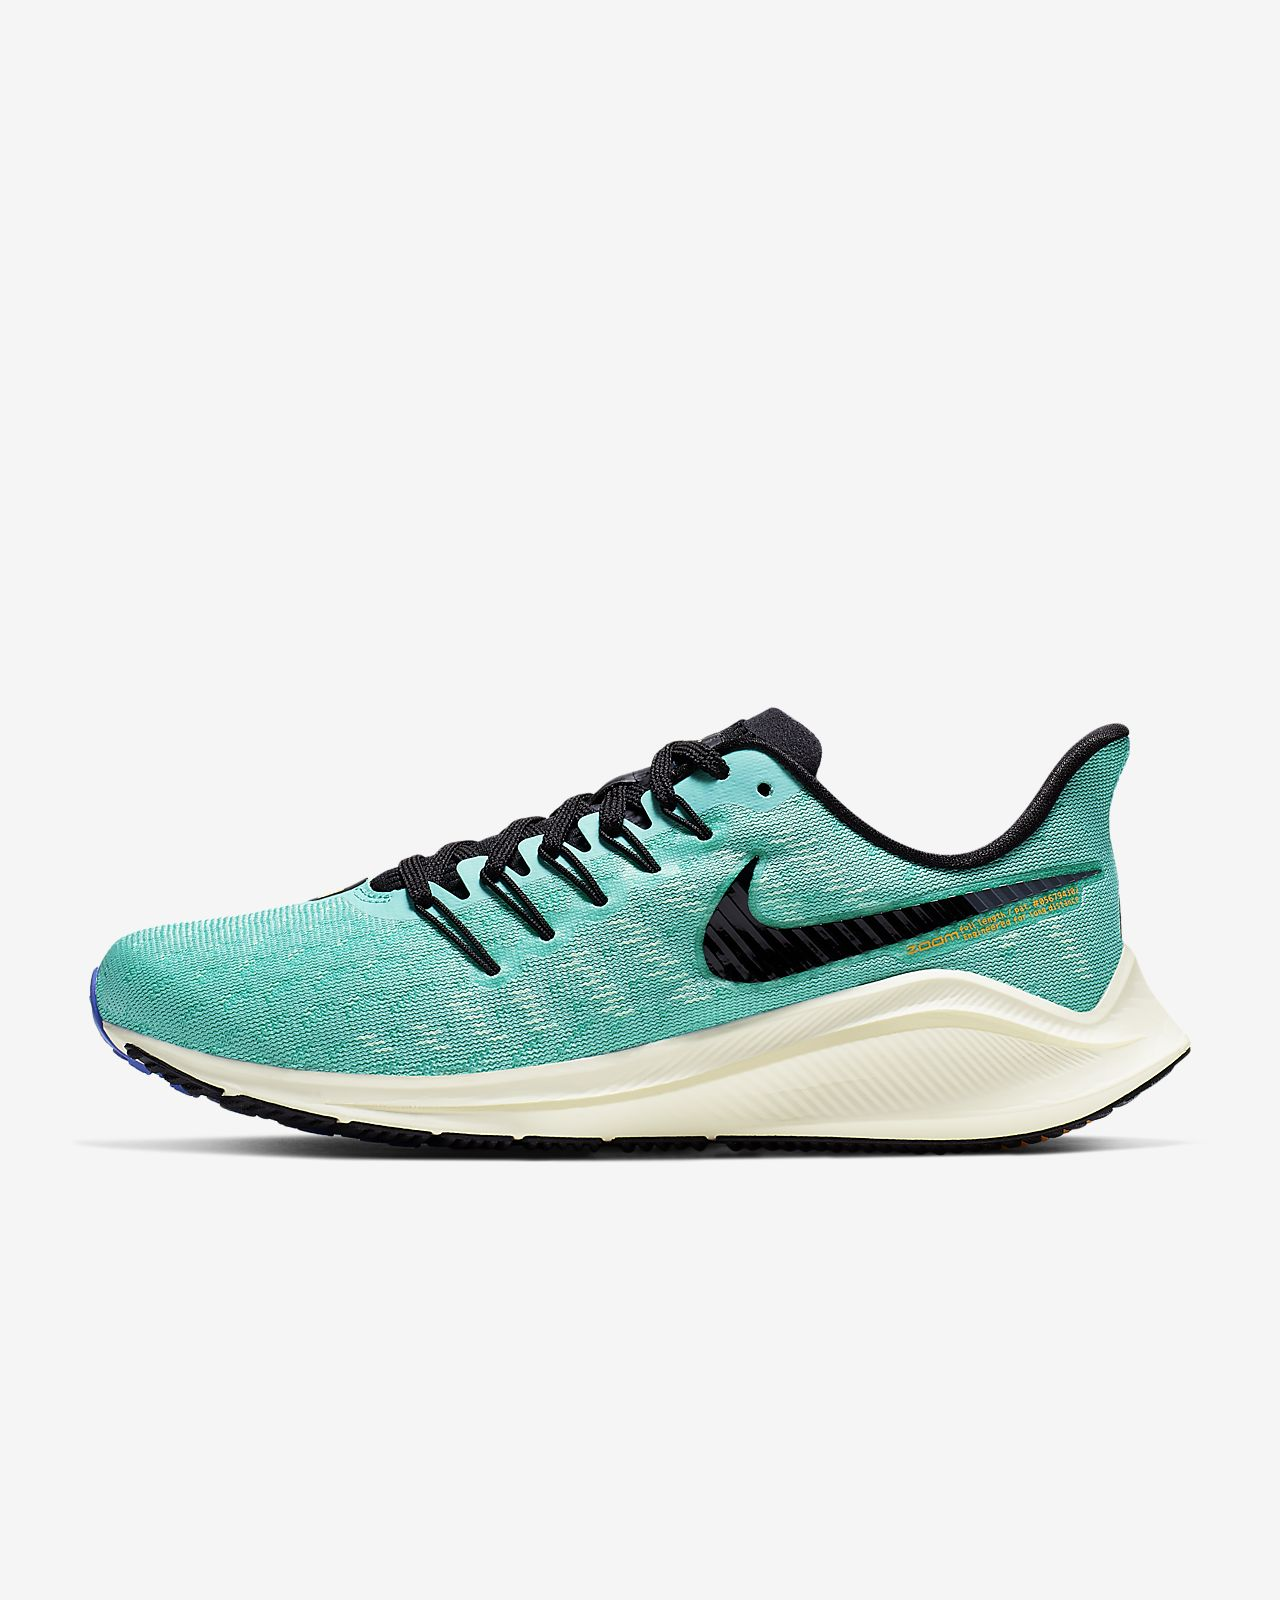 eec27964 Nike Air Zoom Vomero 14 Women's Running Shoe. Nike.com IN